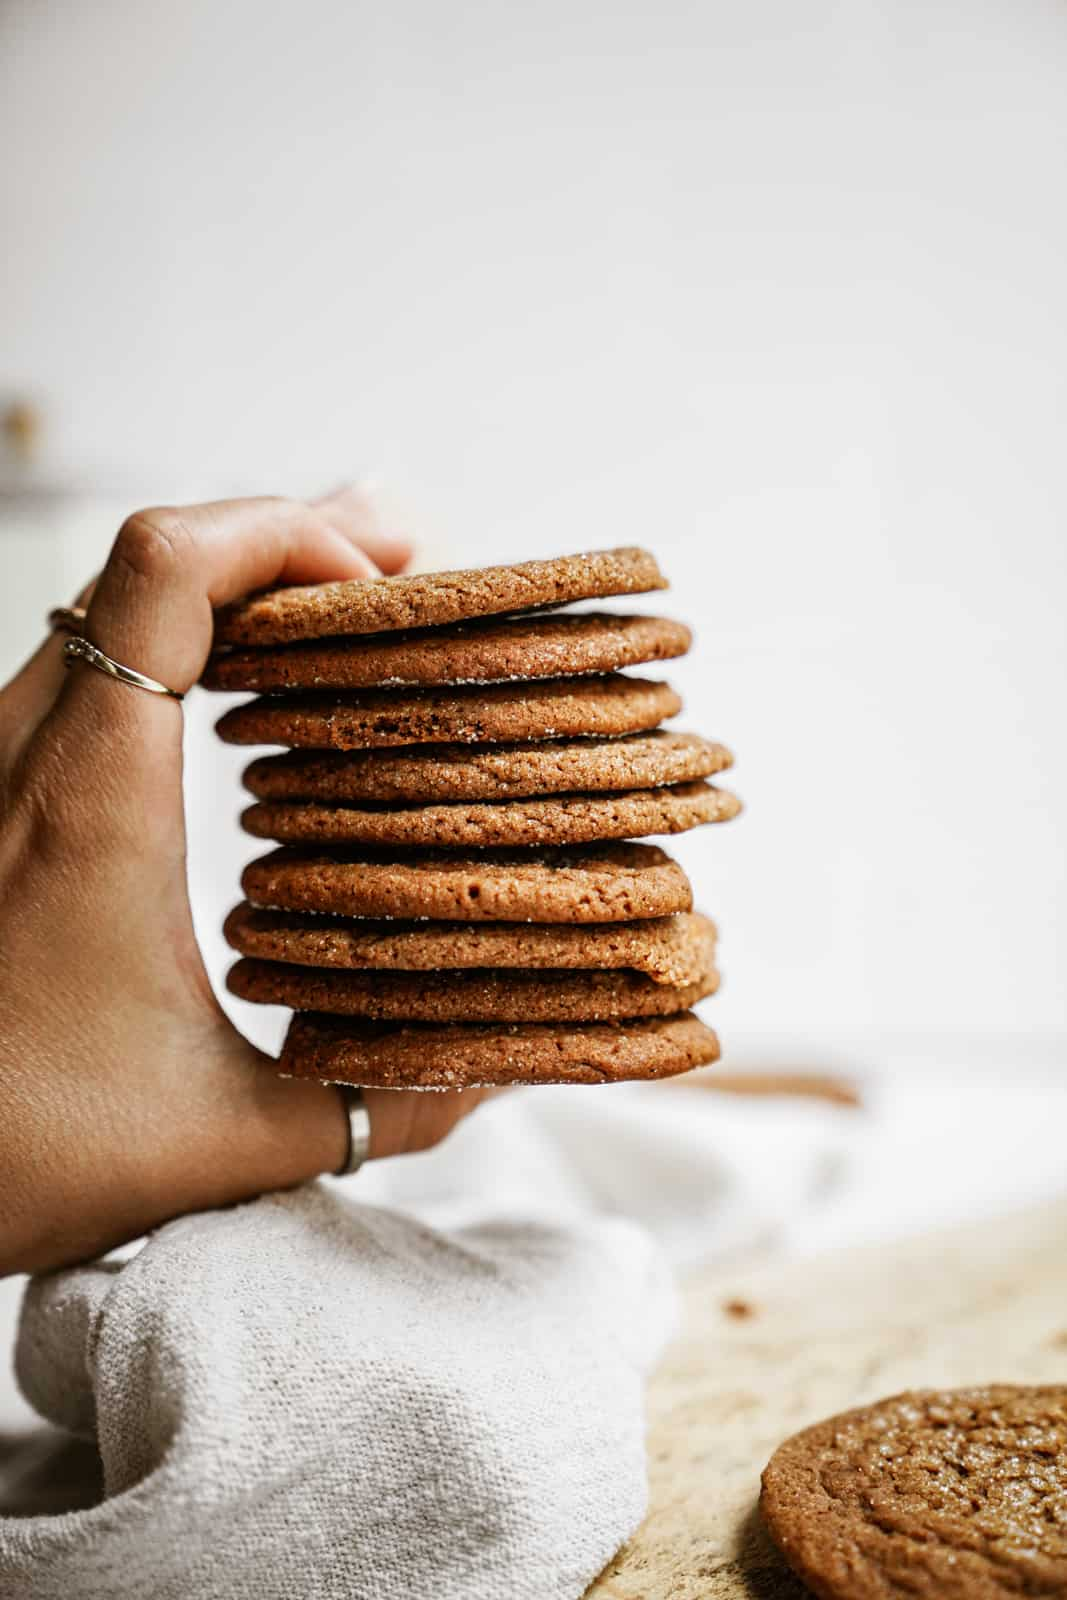 Hand holding a stack of Vegan Ginger Snap Cookies